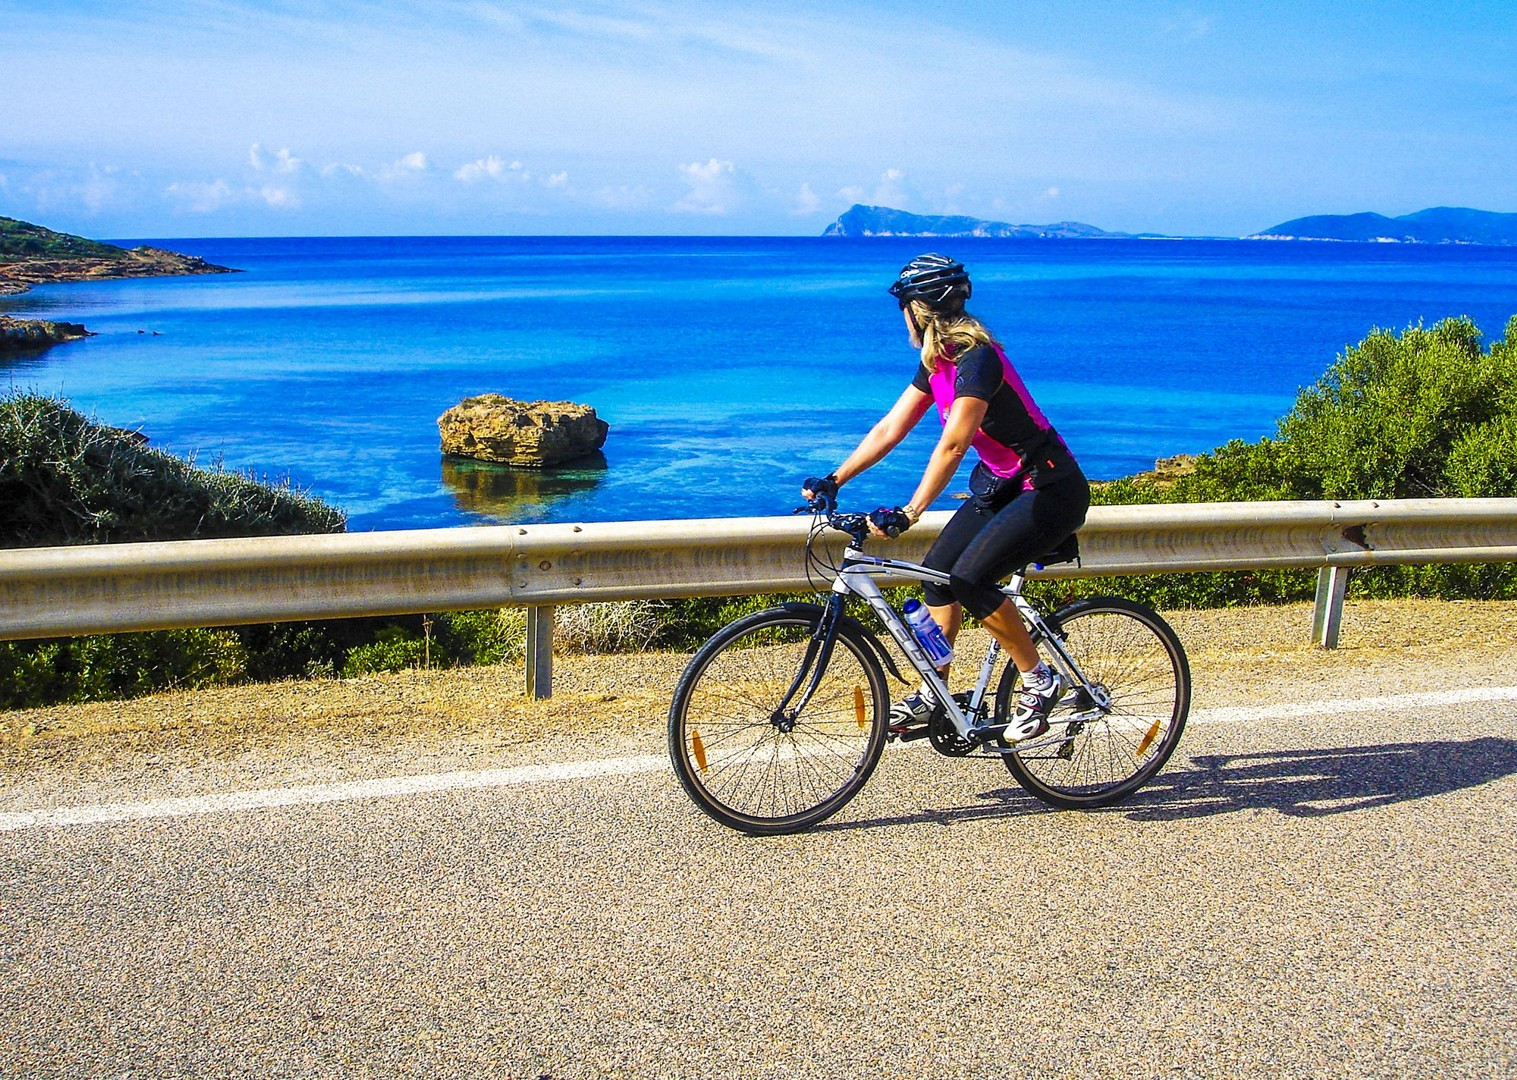 stunning-scenery-in-sardinia-italy-italian-island-guided-leisure-cycling.jpg - Italy - Sardinia - Island Flavours - Guided Leisure Cycling Holiday - Leisure Cycling